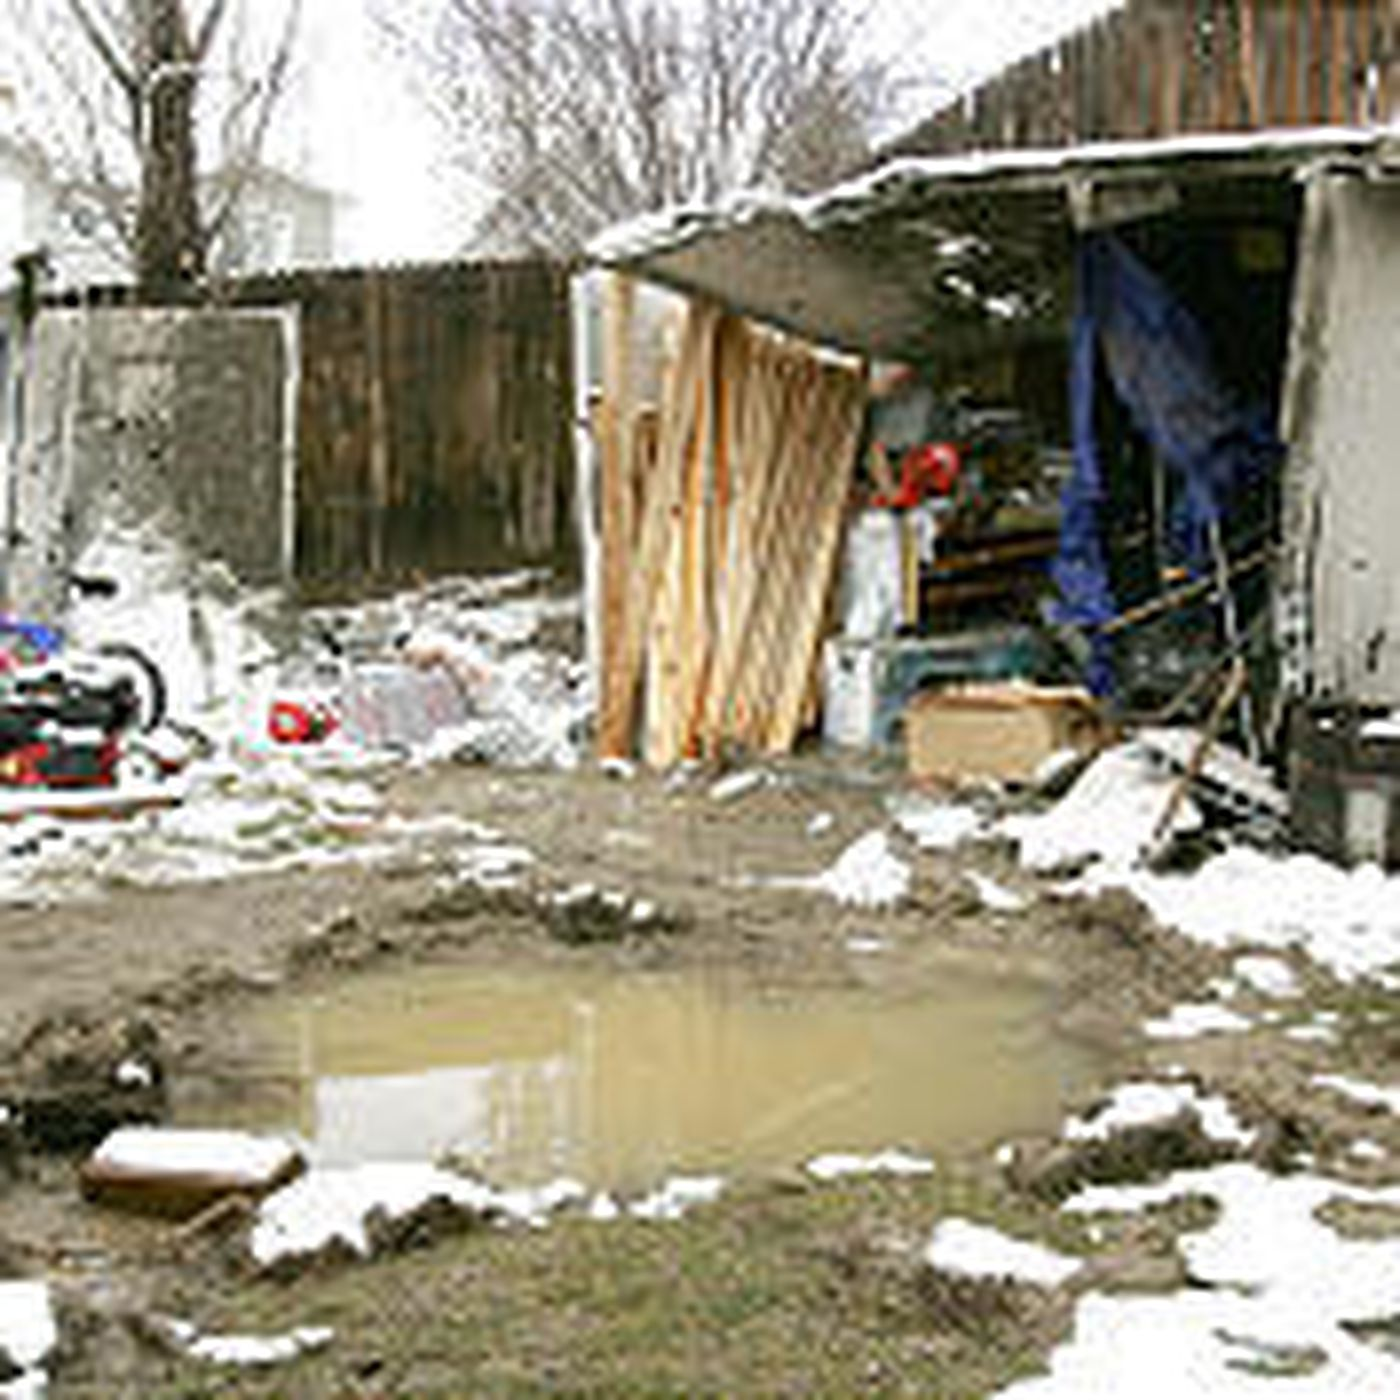 Shell shocked: Errant avalanche bomb rips Pleasant Grove